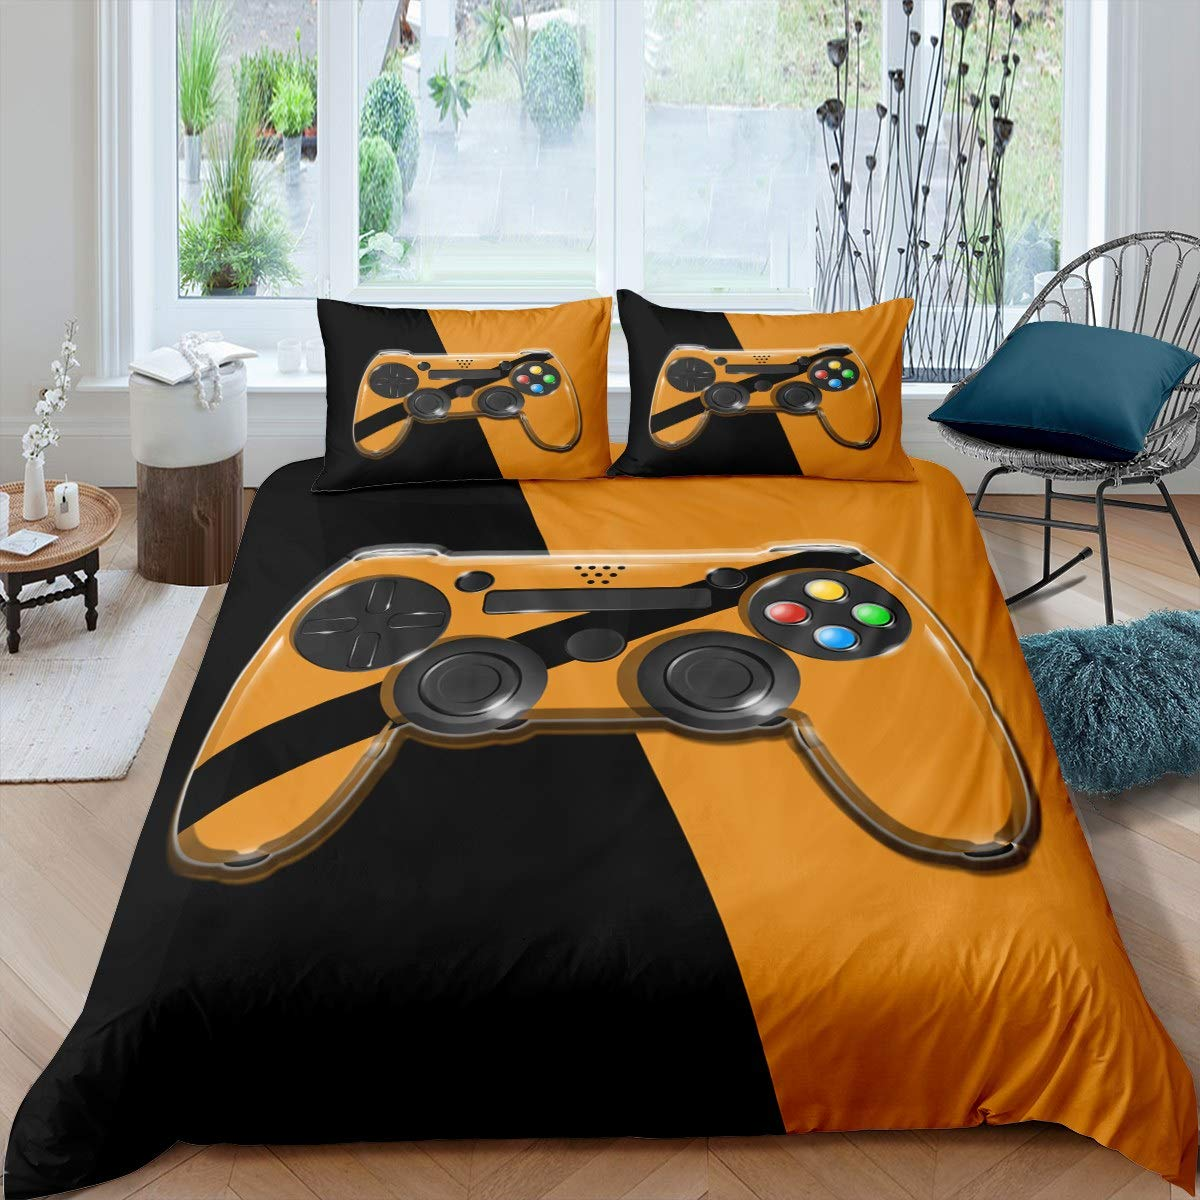 Feelyou Gamer Duvet Cover Set,Games Comforter Cover for Kids Boys Girls,Video Game Gamepad Bedding Set Novelty Modern Game Controller Bedspread Cover Purole Action Buttons Bedclothes Black,3Pcs,Full